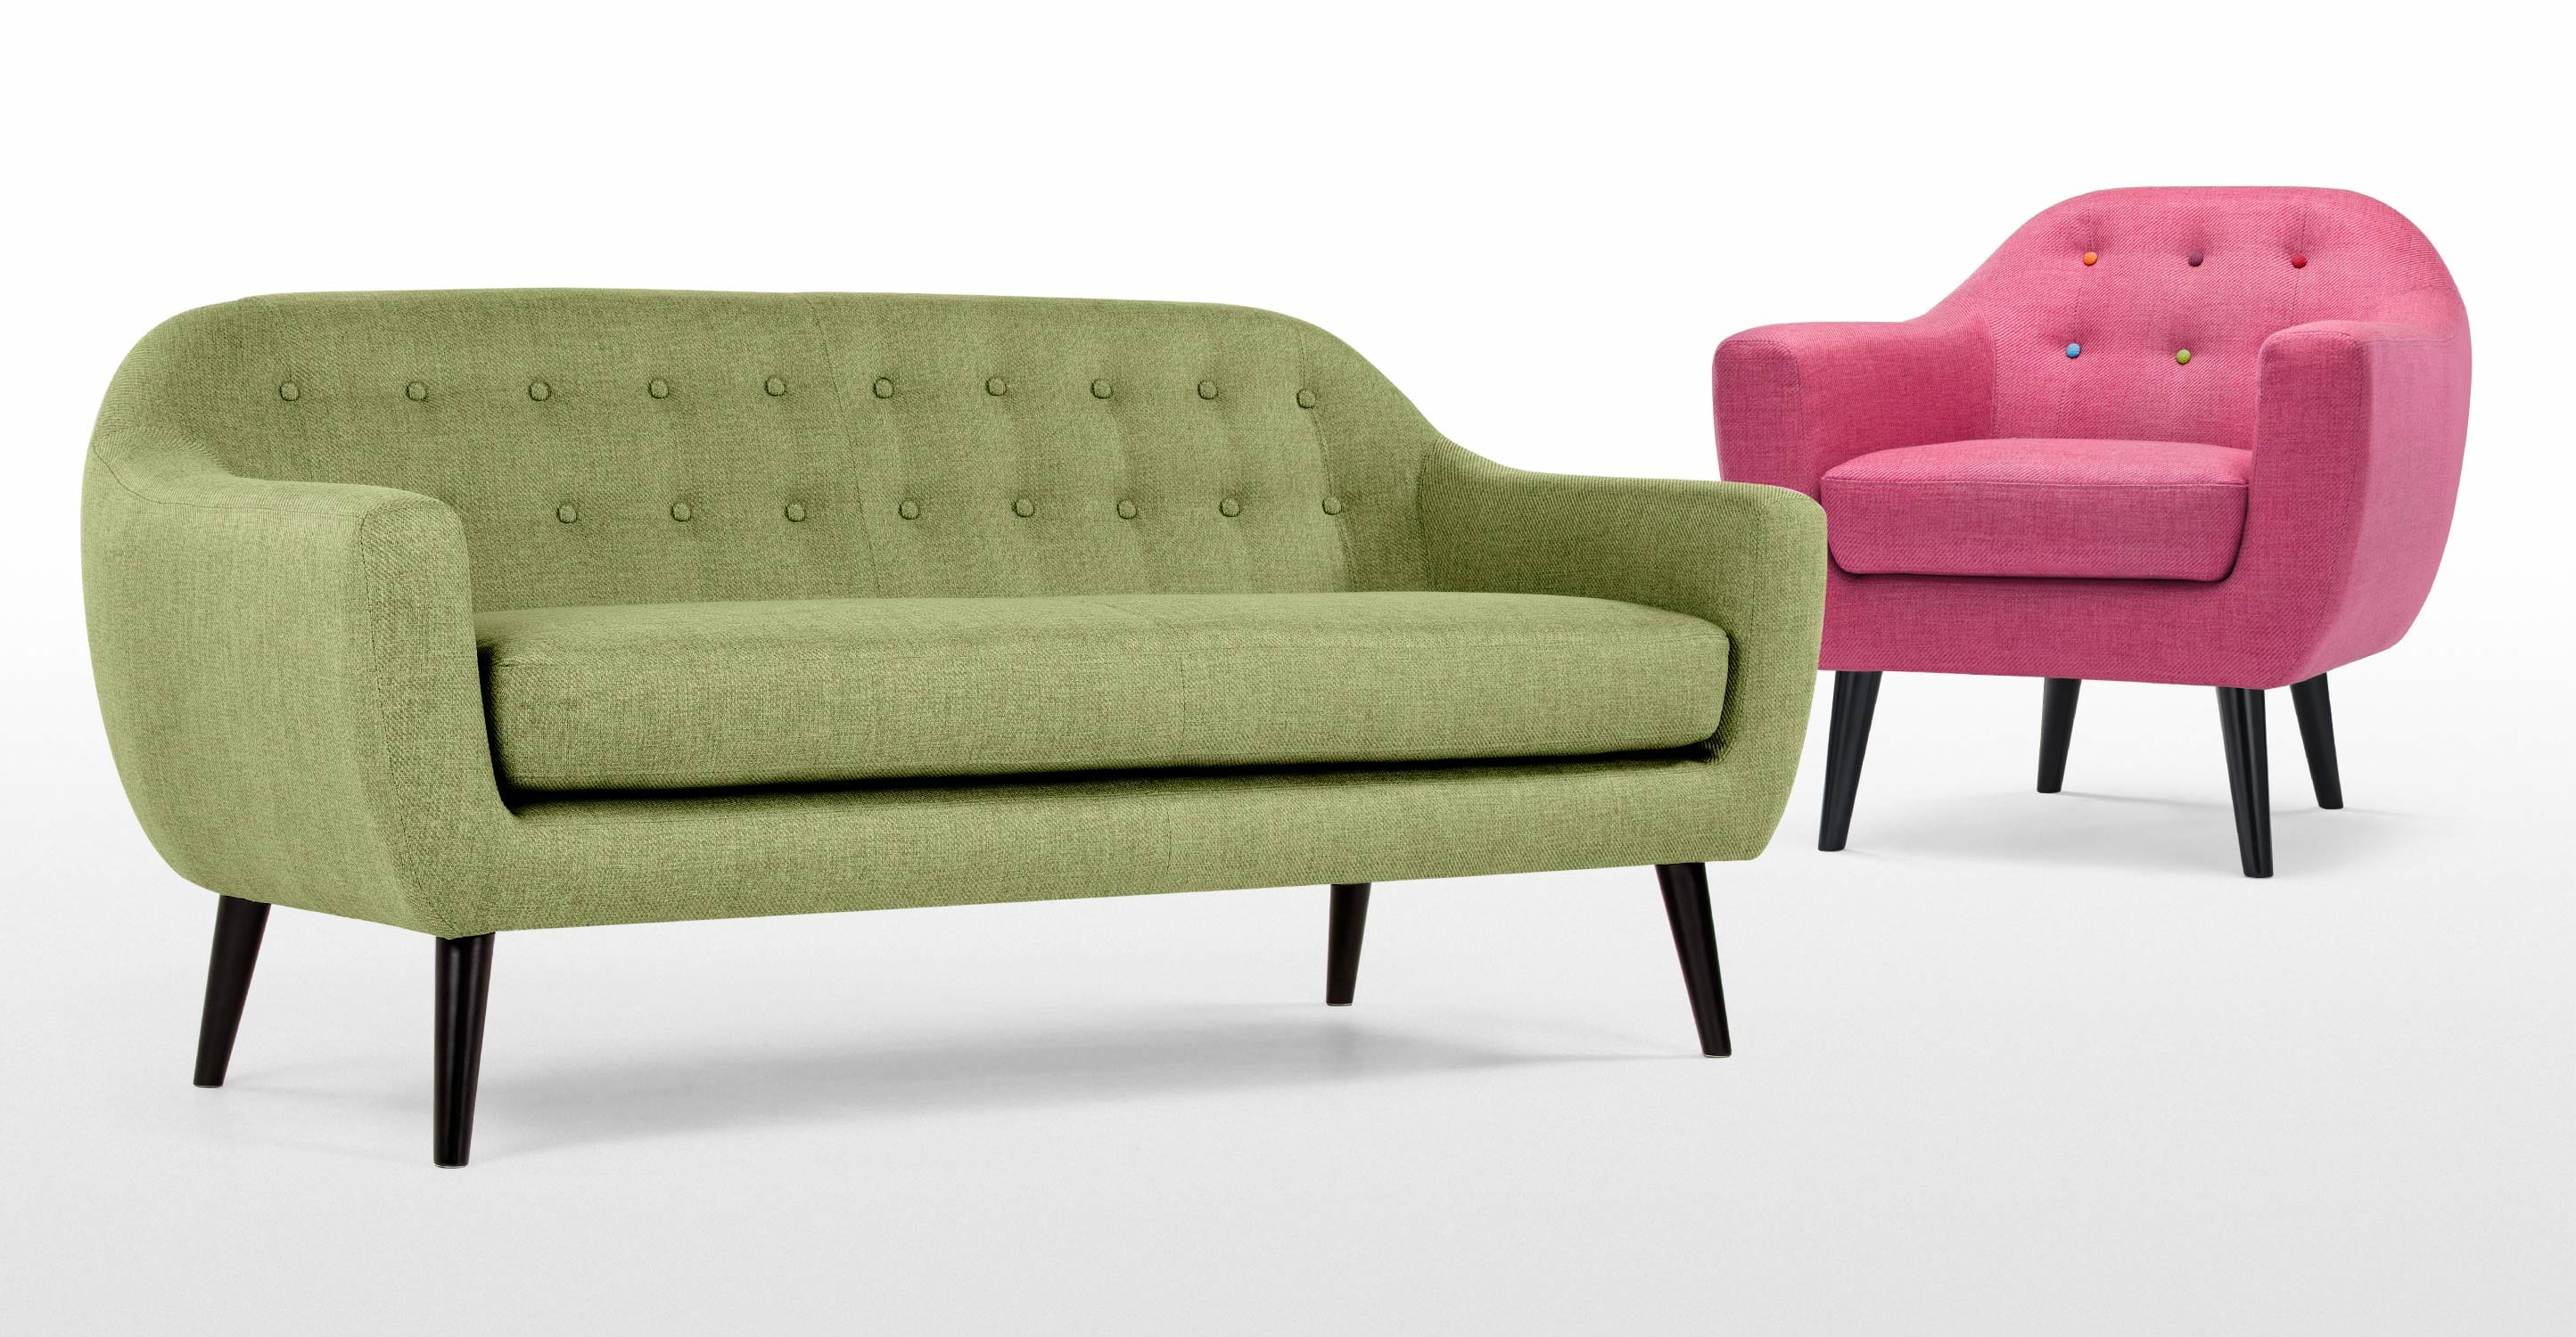 lime sofa uk contemporary sectional and ottoman set black ritchie 3 seater in green made